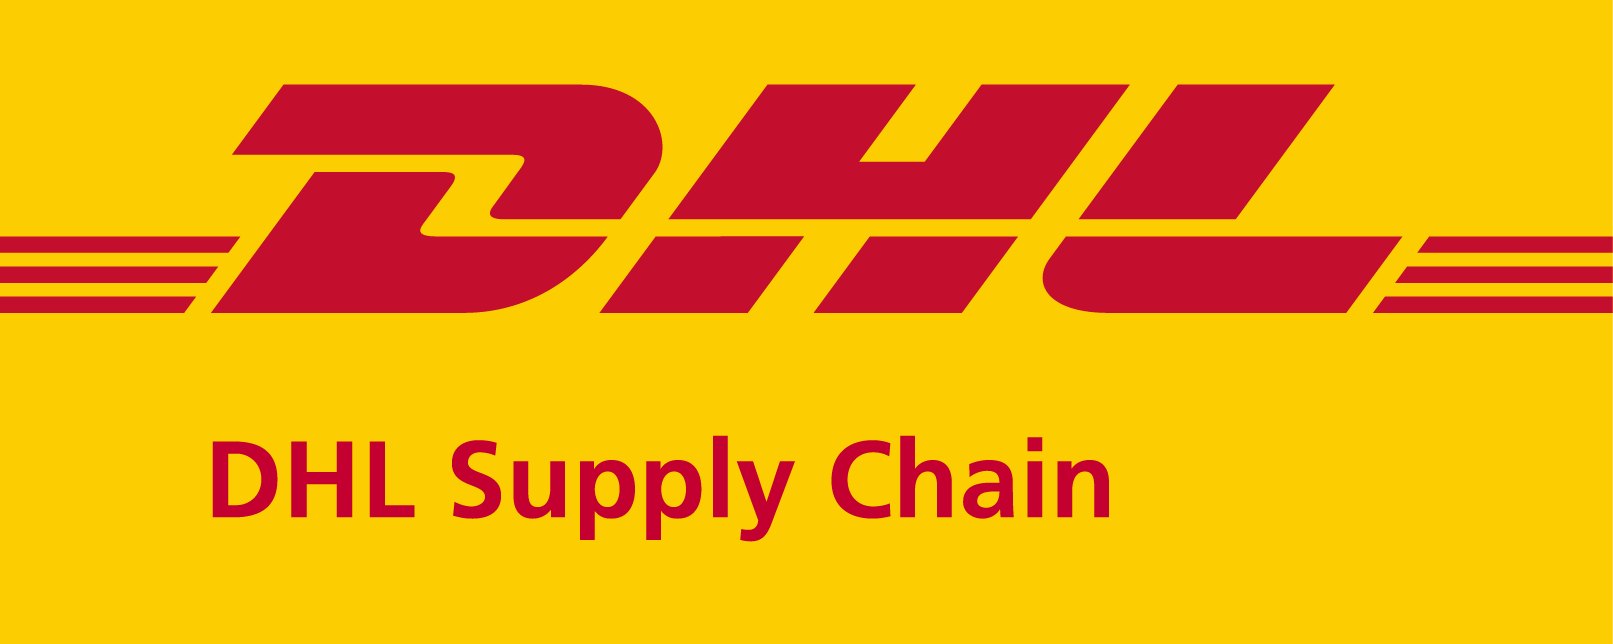 DHL_supplychain_sc